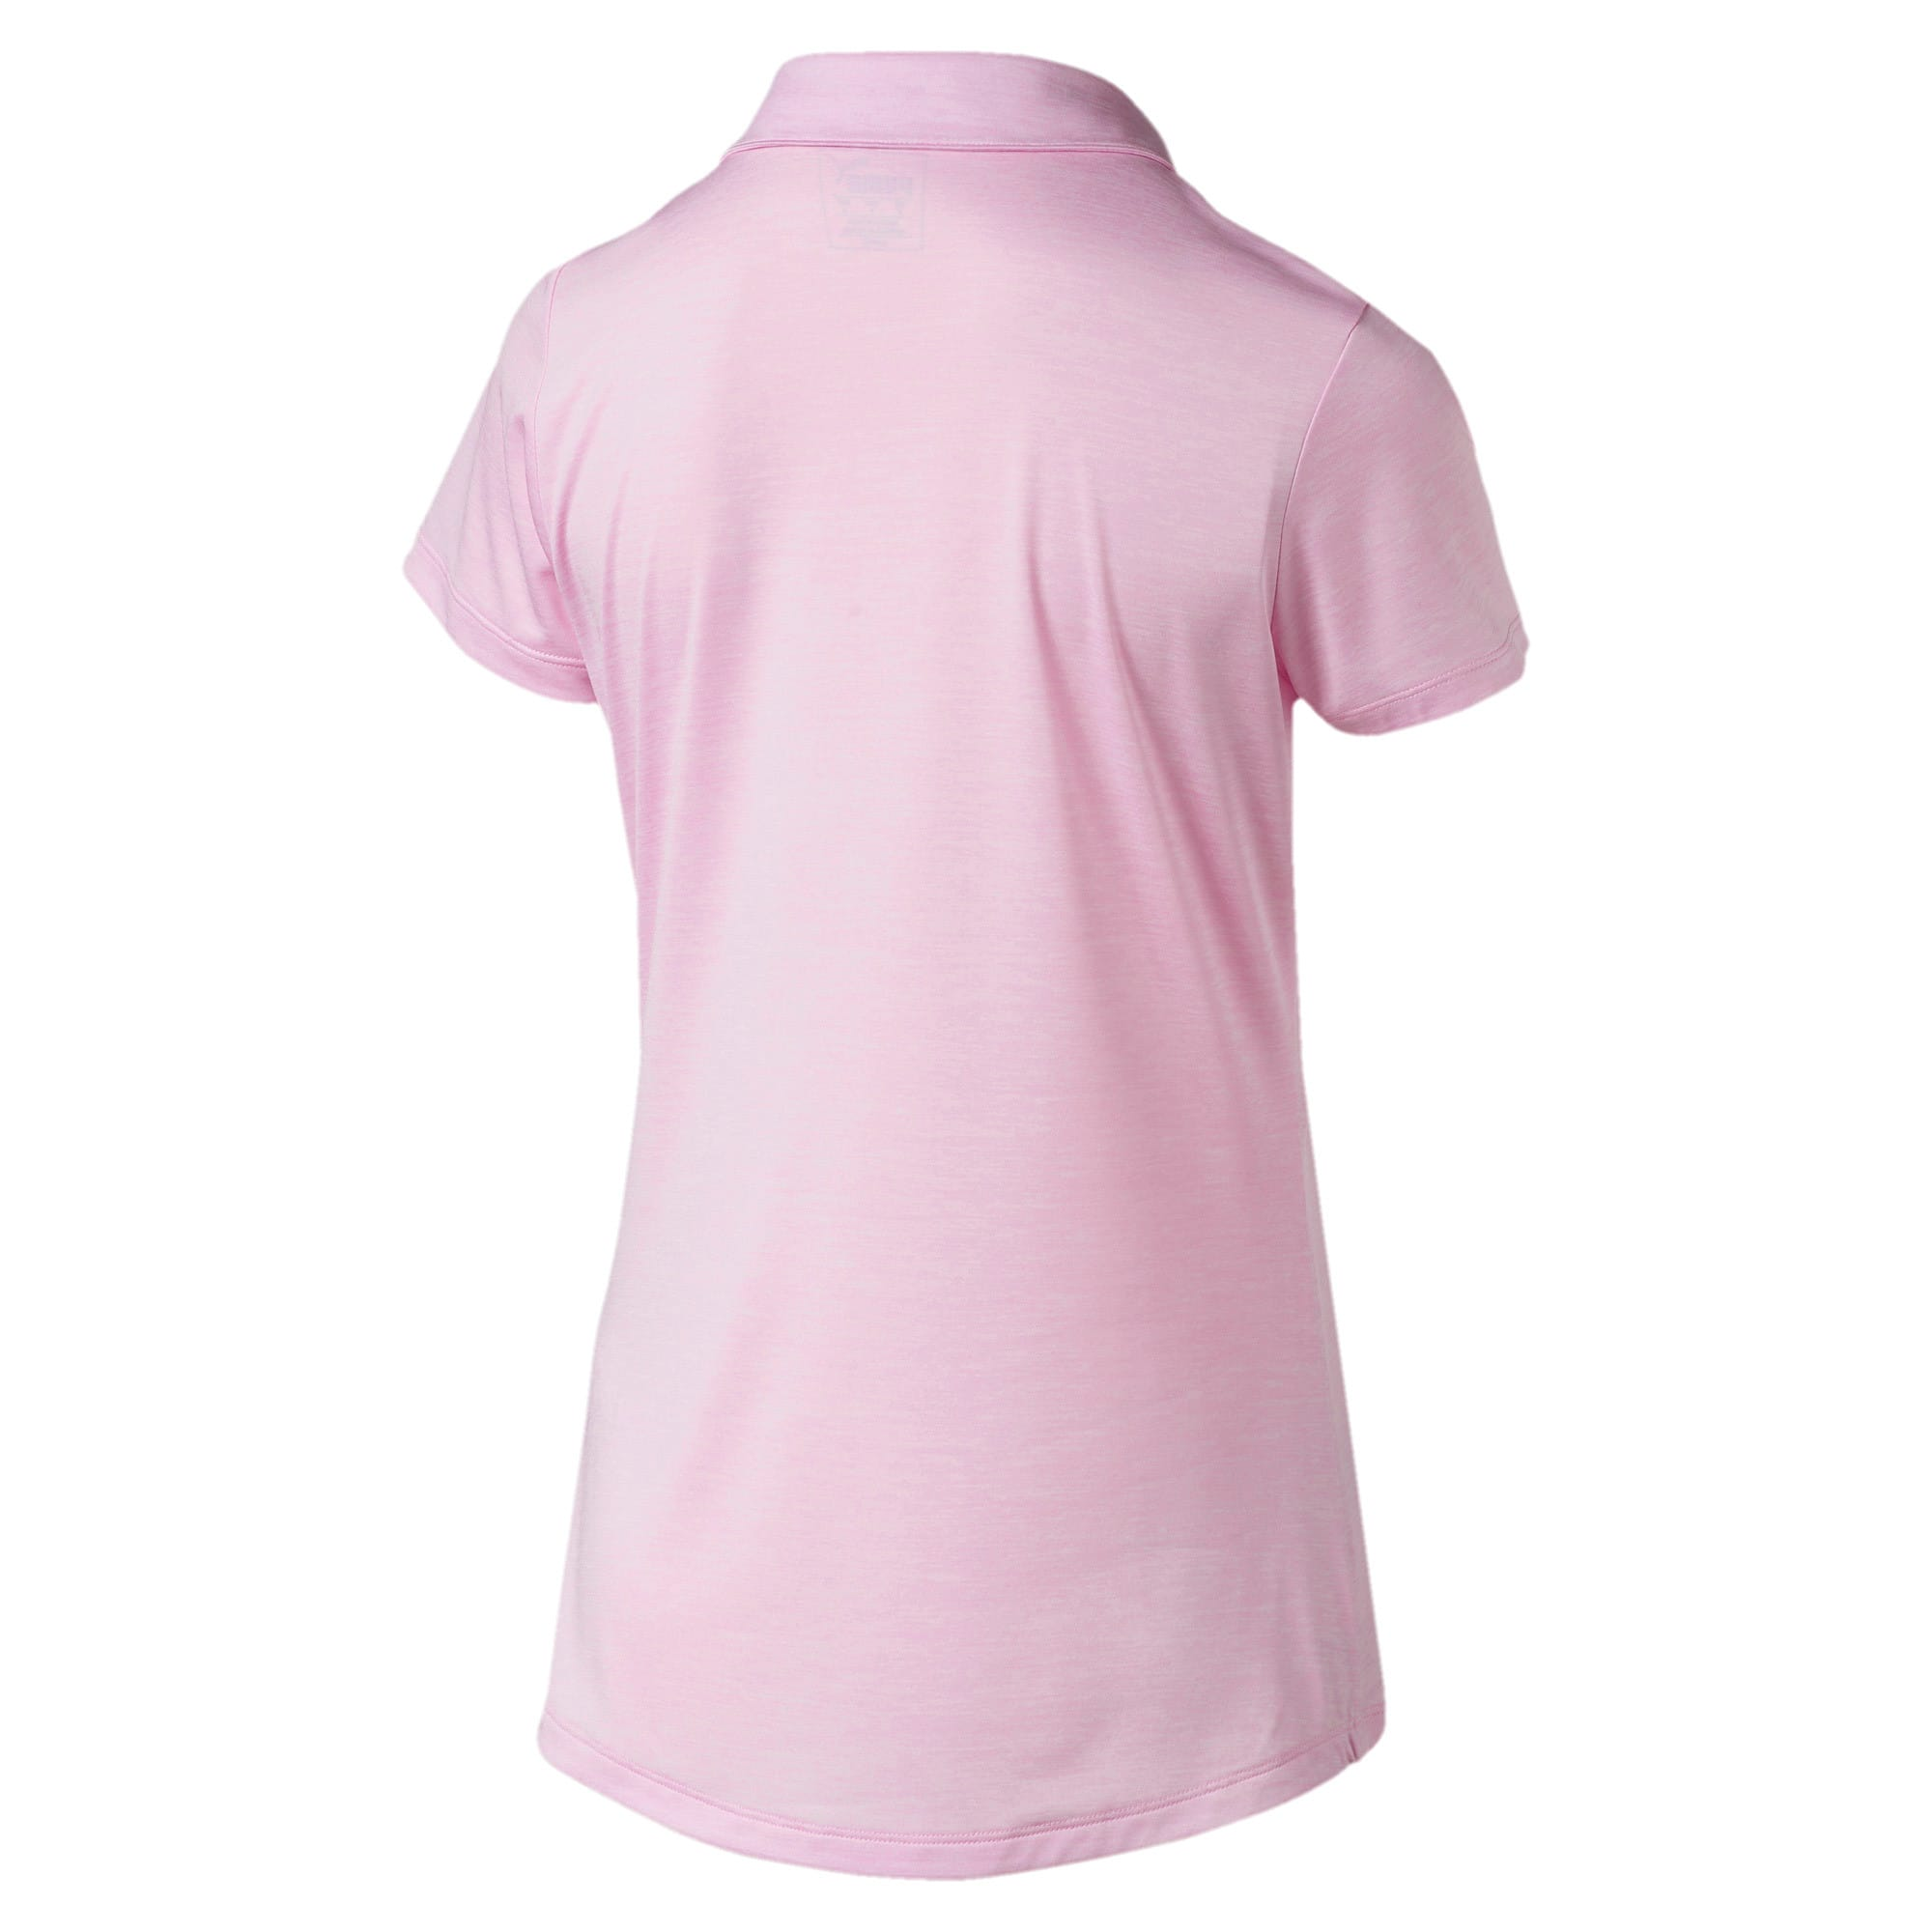 Miniatura 2 de Camiseta tipo polo Super Soft para mujer, Pale Pink Heather, mediano